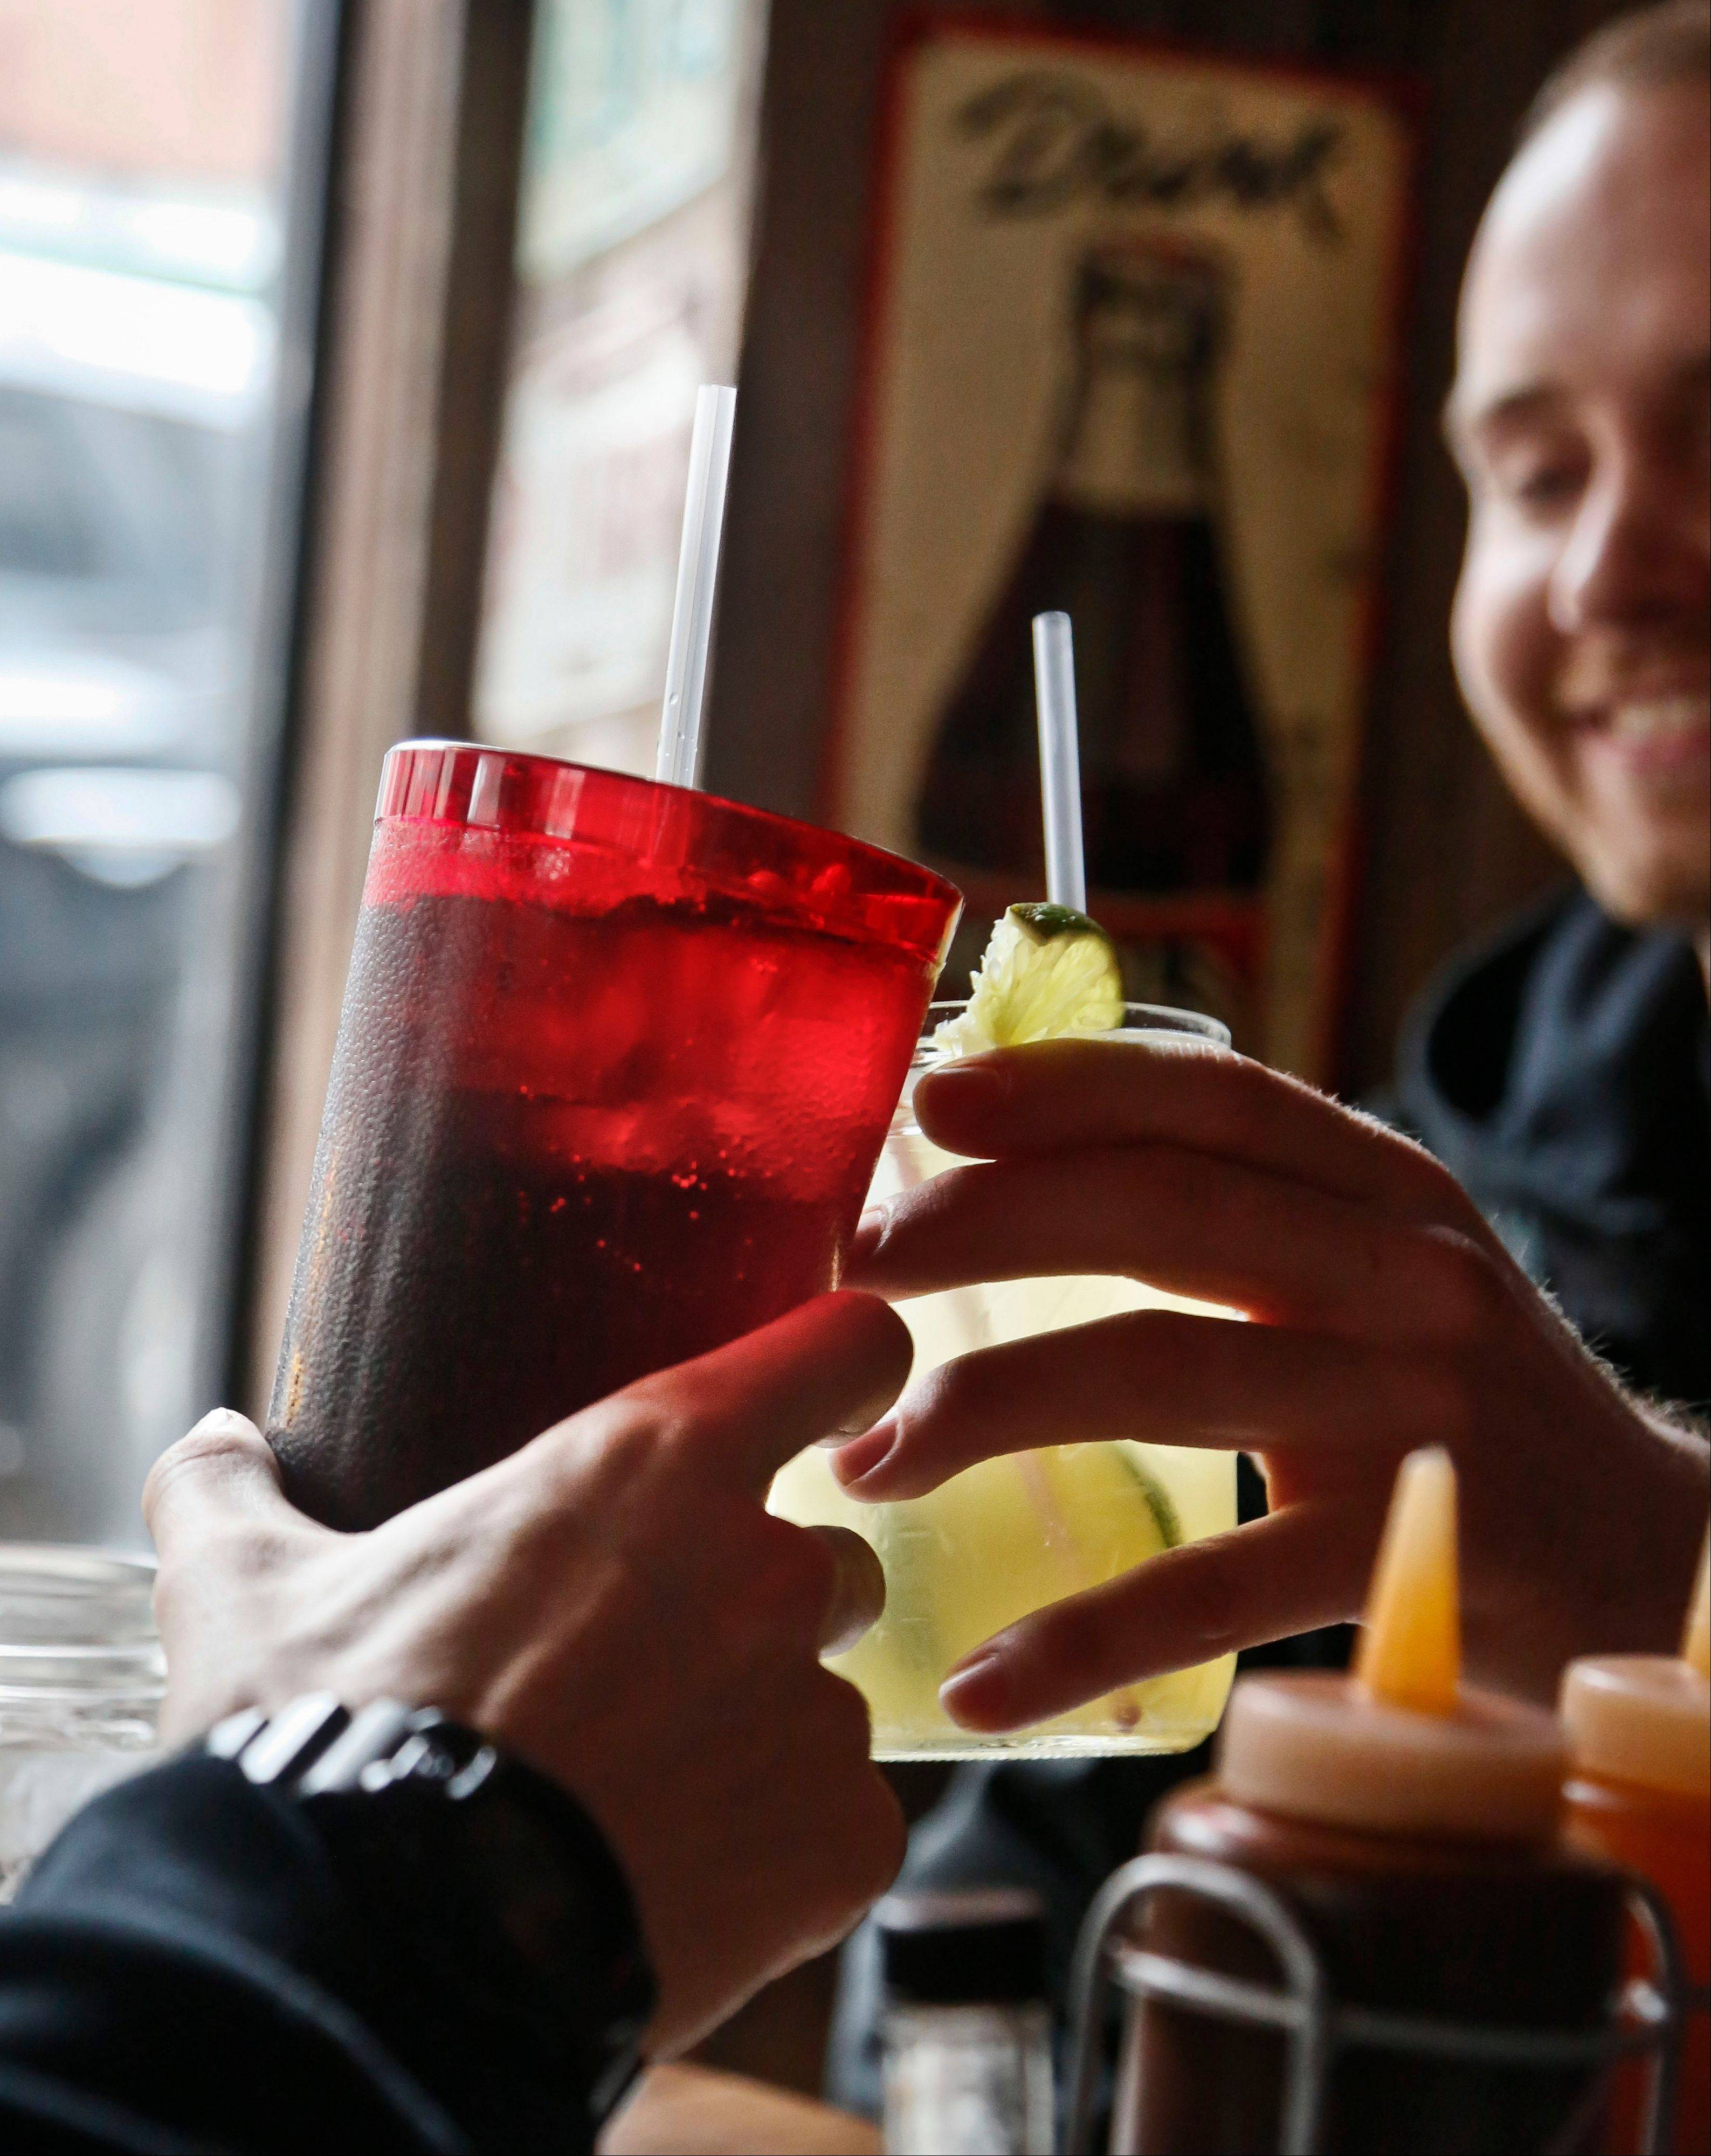 Customers at Brother Jimmy's BBQ in New York call cheers Friday with 24-ounce and 16-ounce beverages. The nation's first limit on the size of sugar-laden beverages is set to take effect Tuesday.